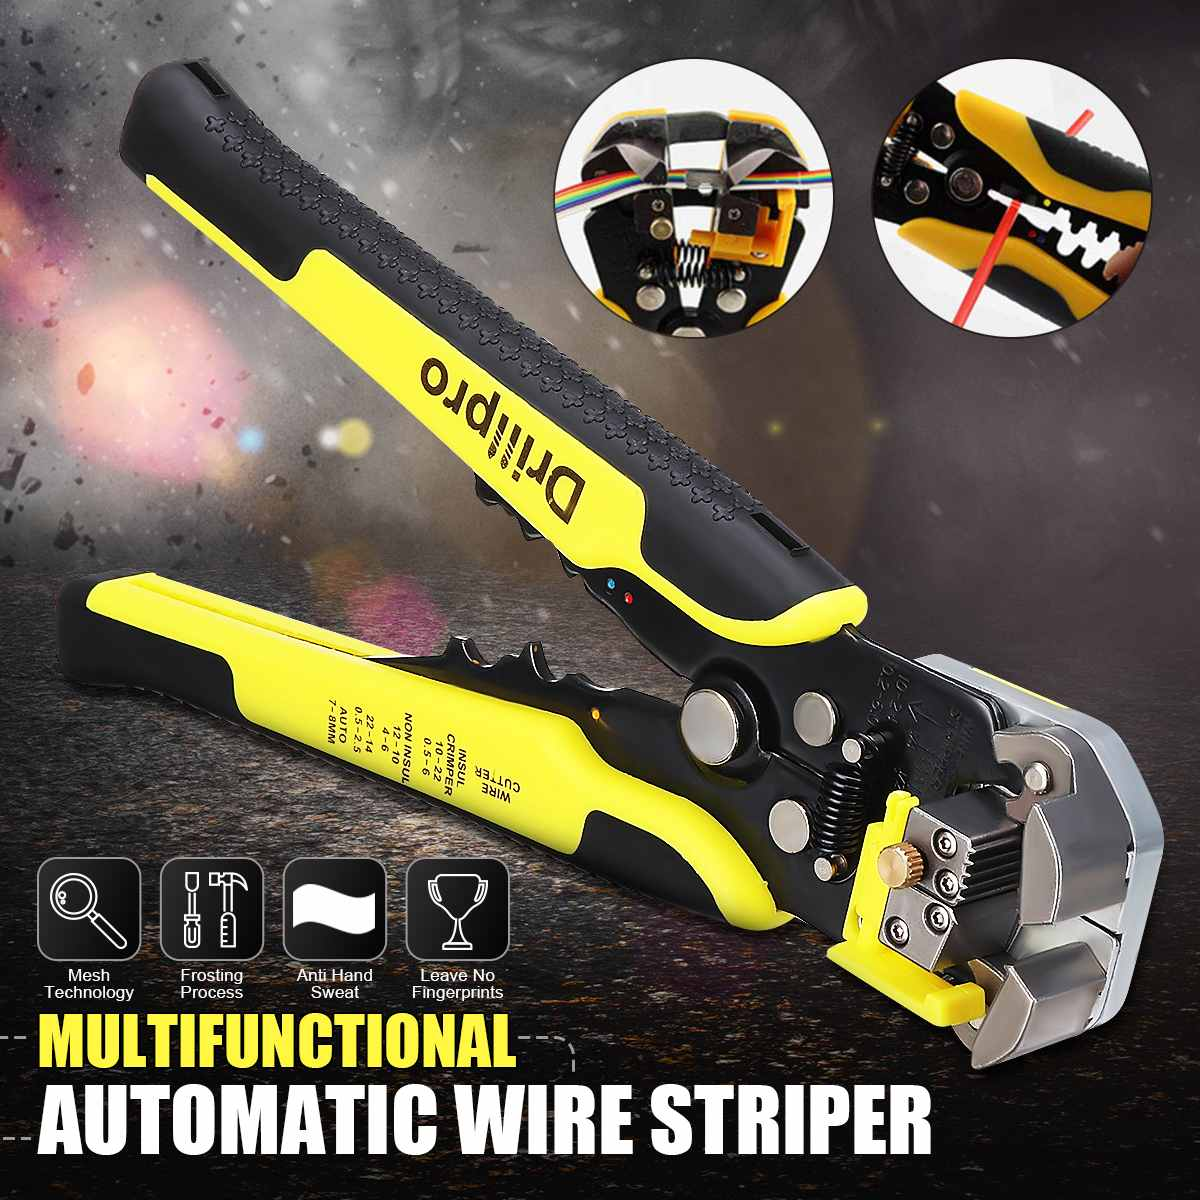 Multifunctional Automatic Stripping Pliers Wire Striper Professional Cord Cutter Cable Crimper Line Pliers Cutting Crimping Tool